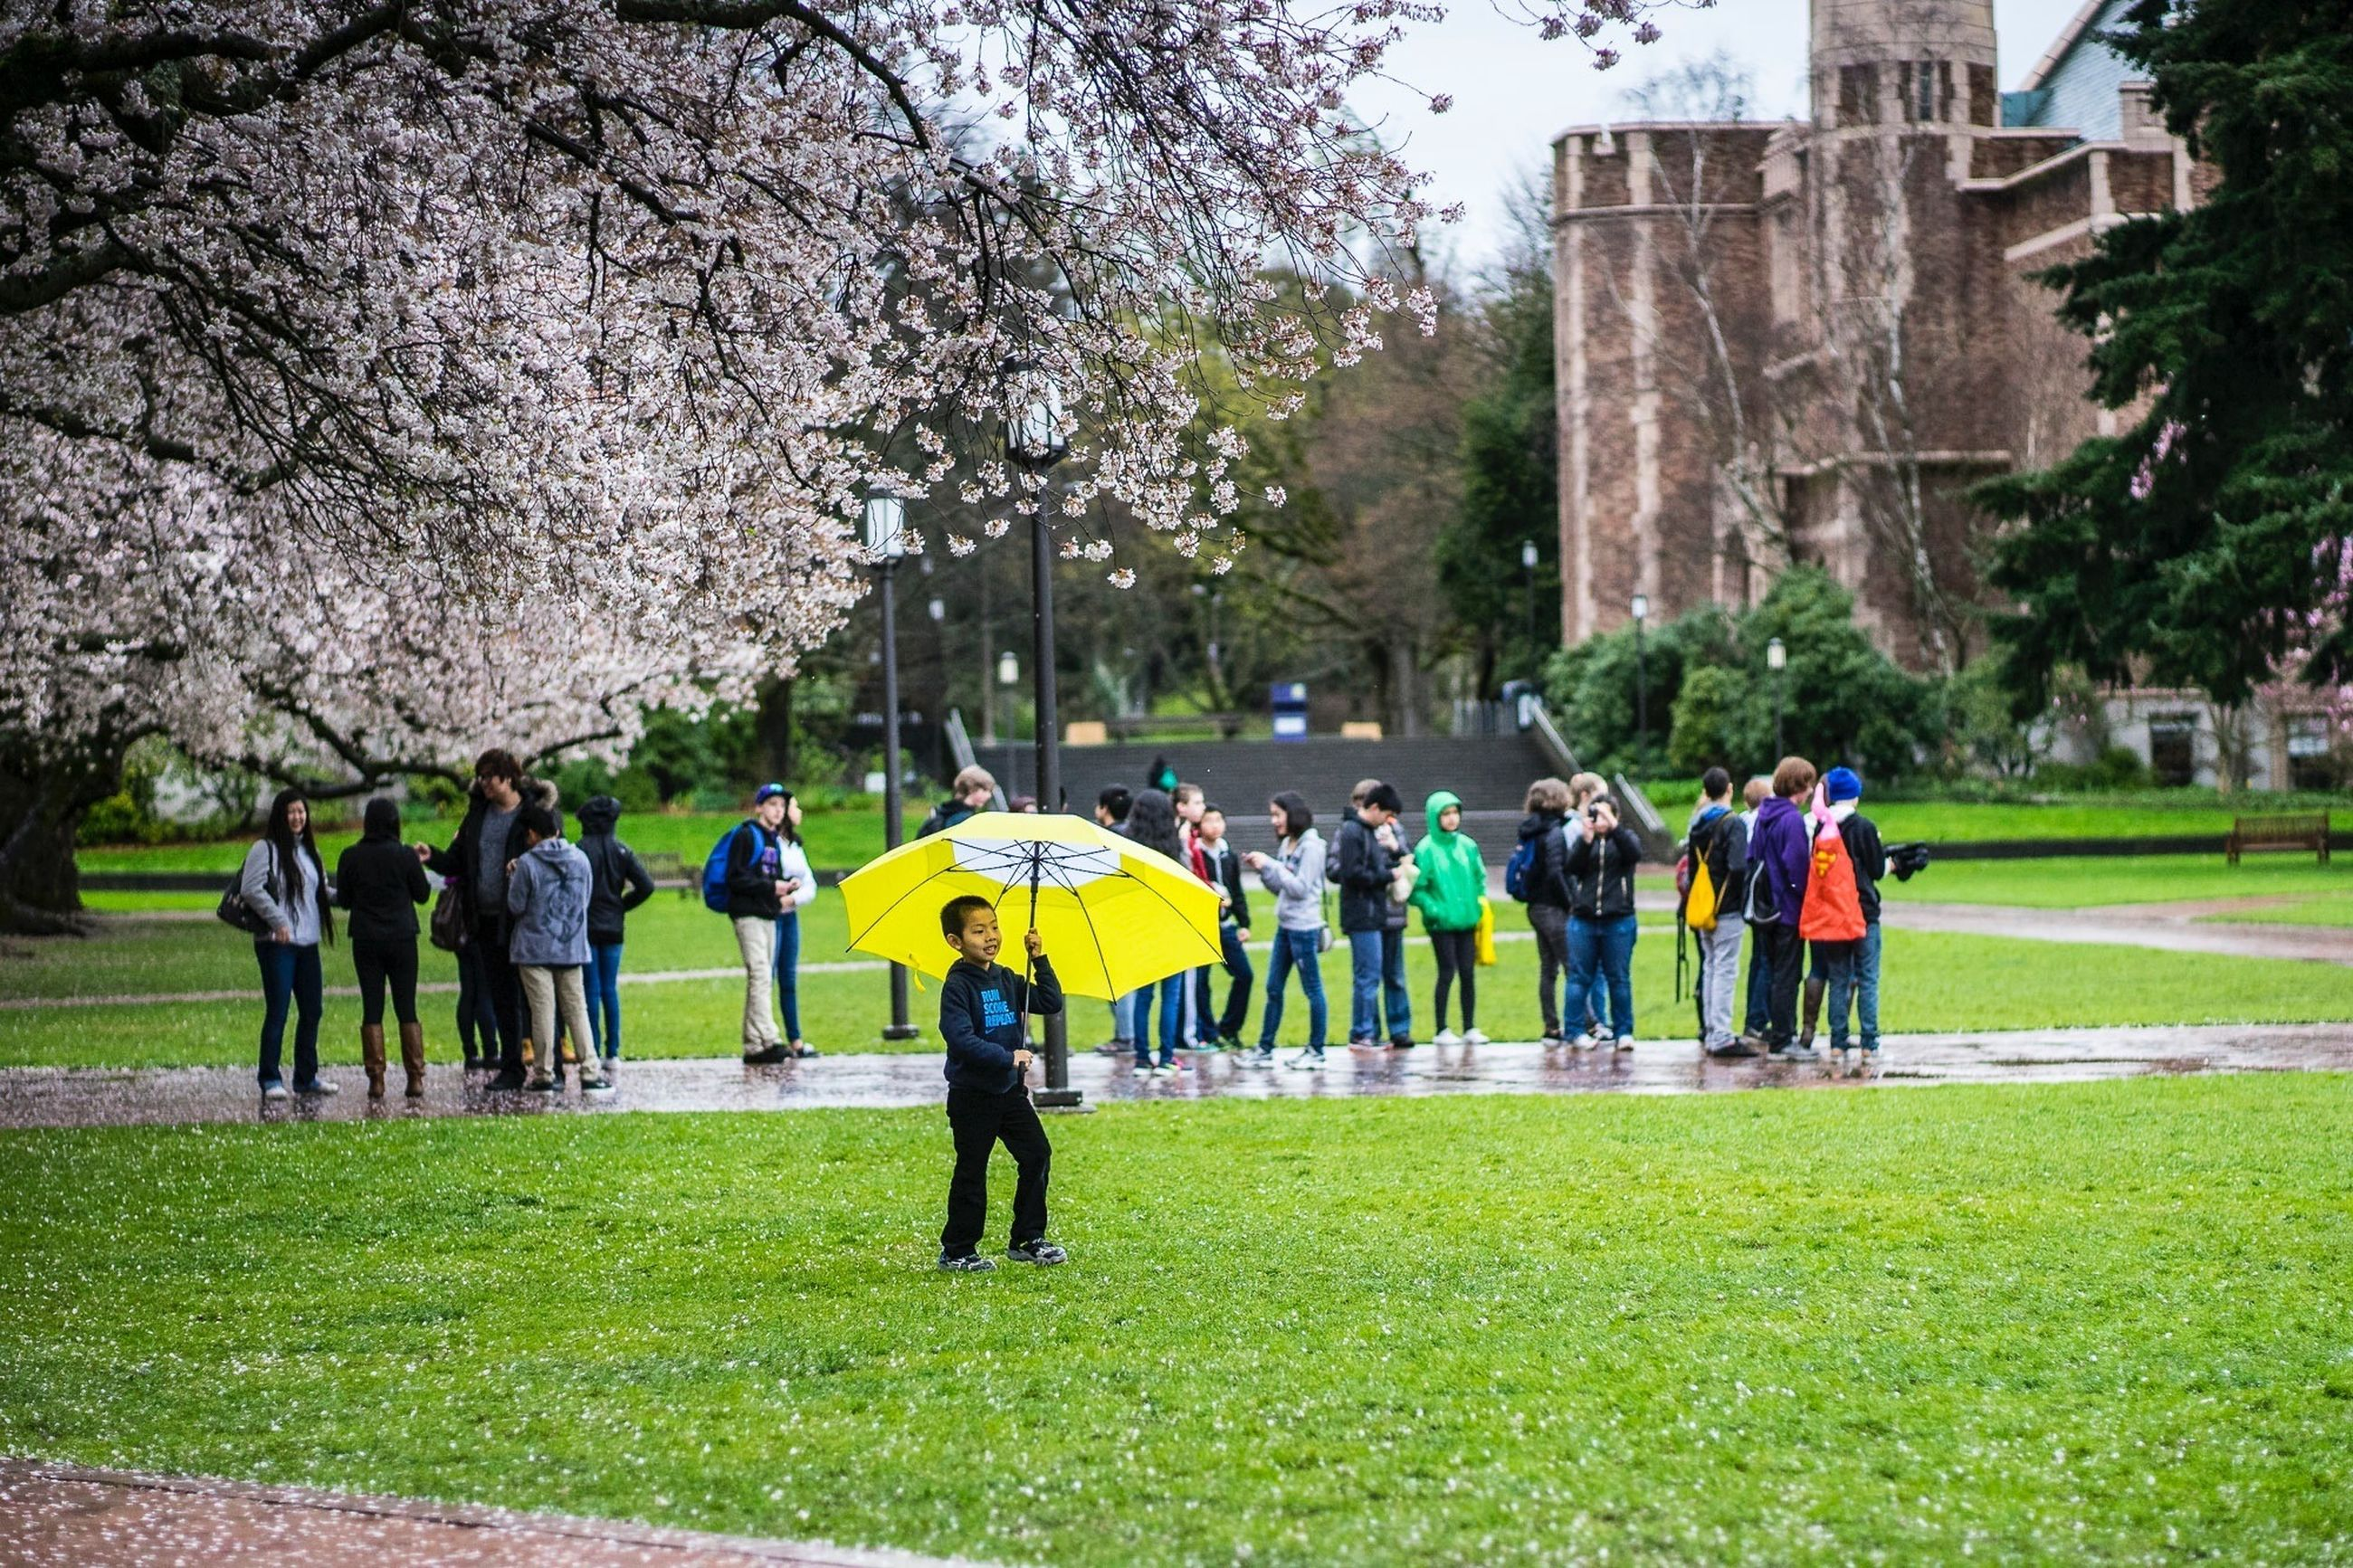 grass, lifestyles, men, leisure activity, person, large group of people, full length, walking, park - man made space, tree, togetherness, green color, rear view, casual clothing, building exterior, girls, architecture, lawn, built structure